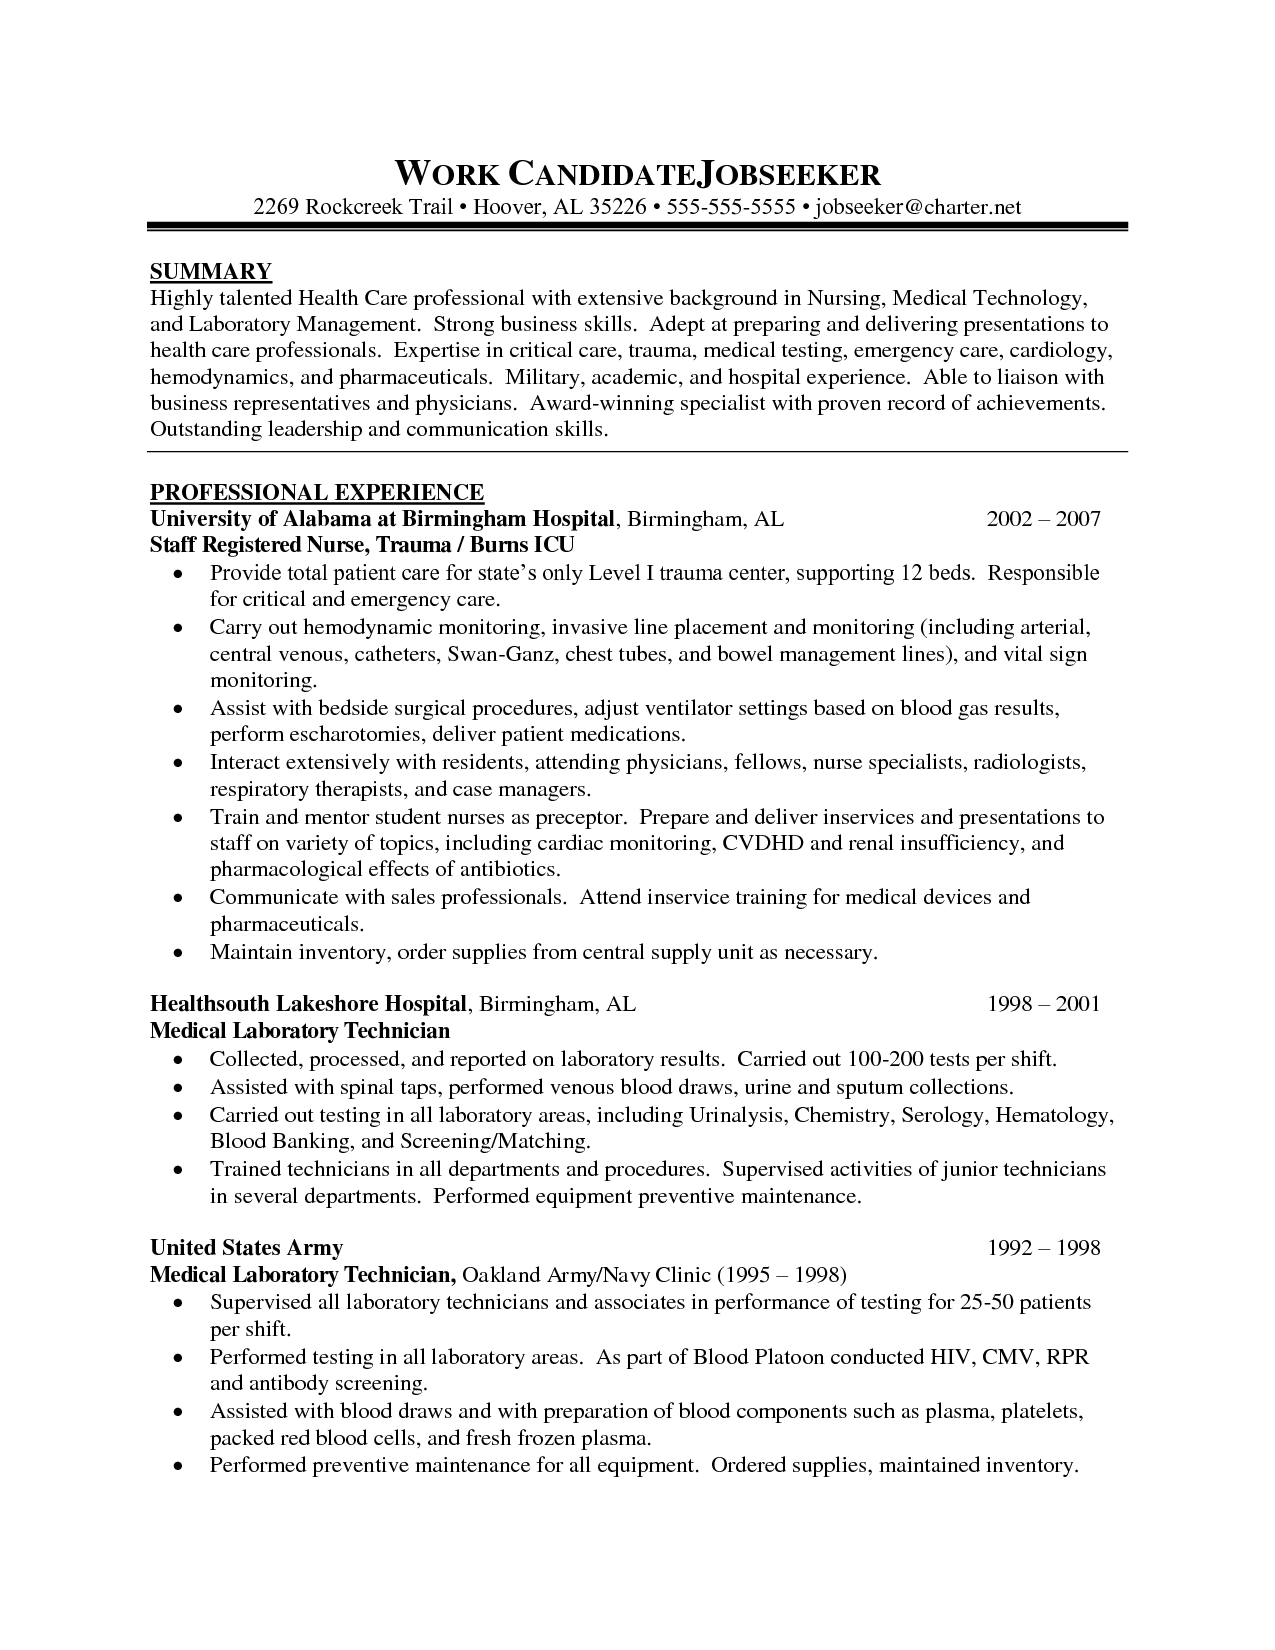 Cardiac Nurse Practitioner Sample Resume Impressive Resume Examples Nursing Student  Pinterest  Professional Resume .